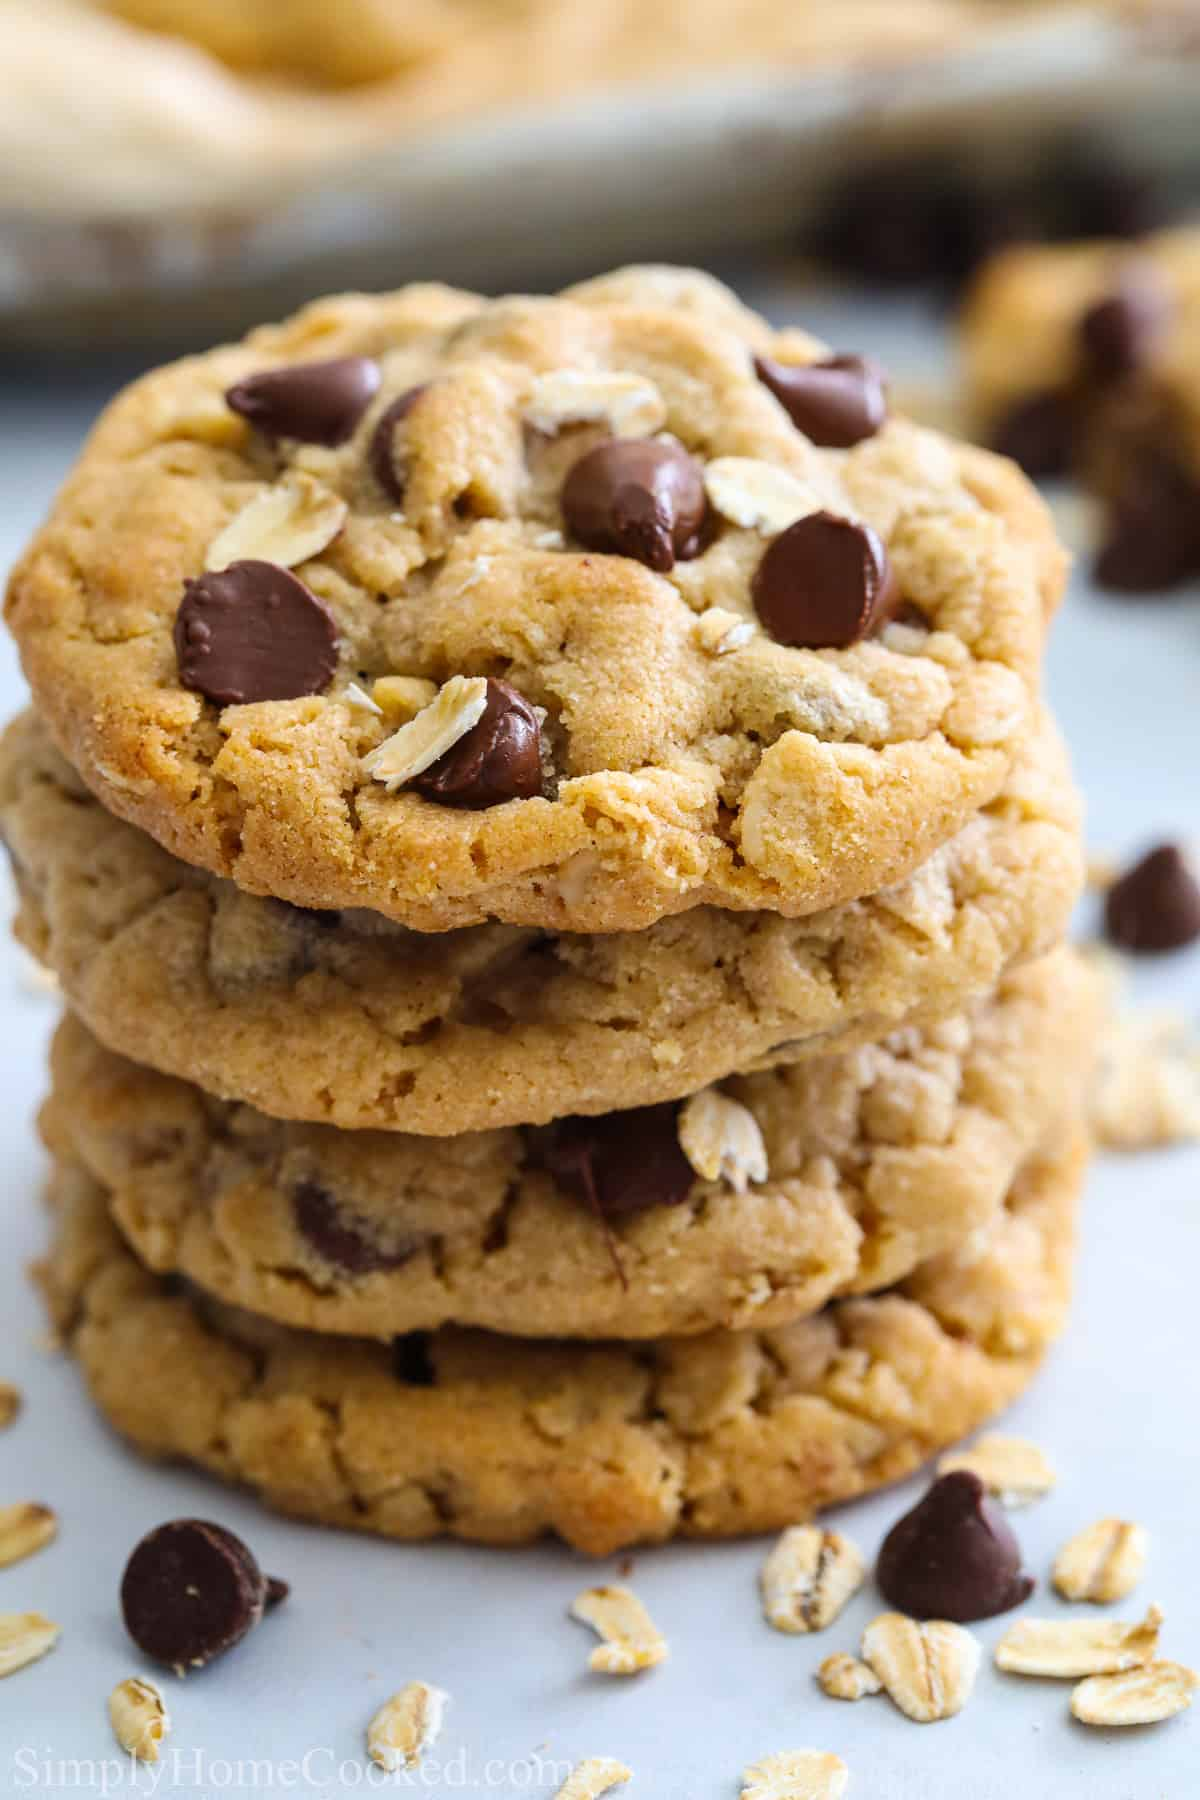 Stack of Chewy Peanut Butter Oatmeal Cookies with chocolate chips.